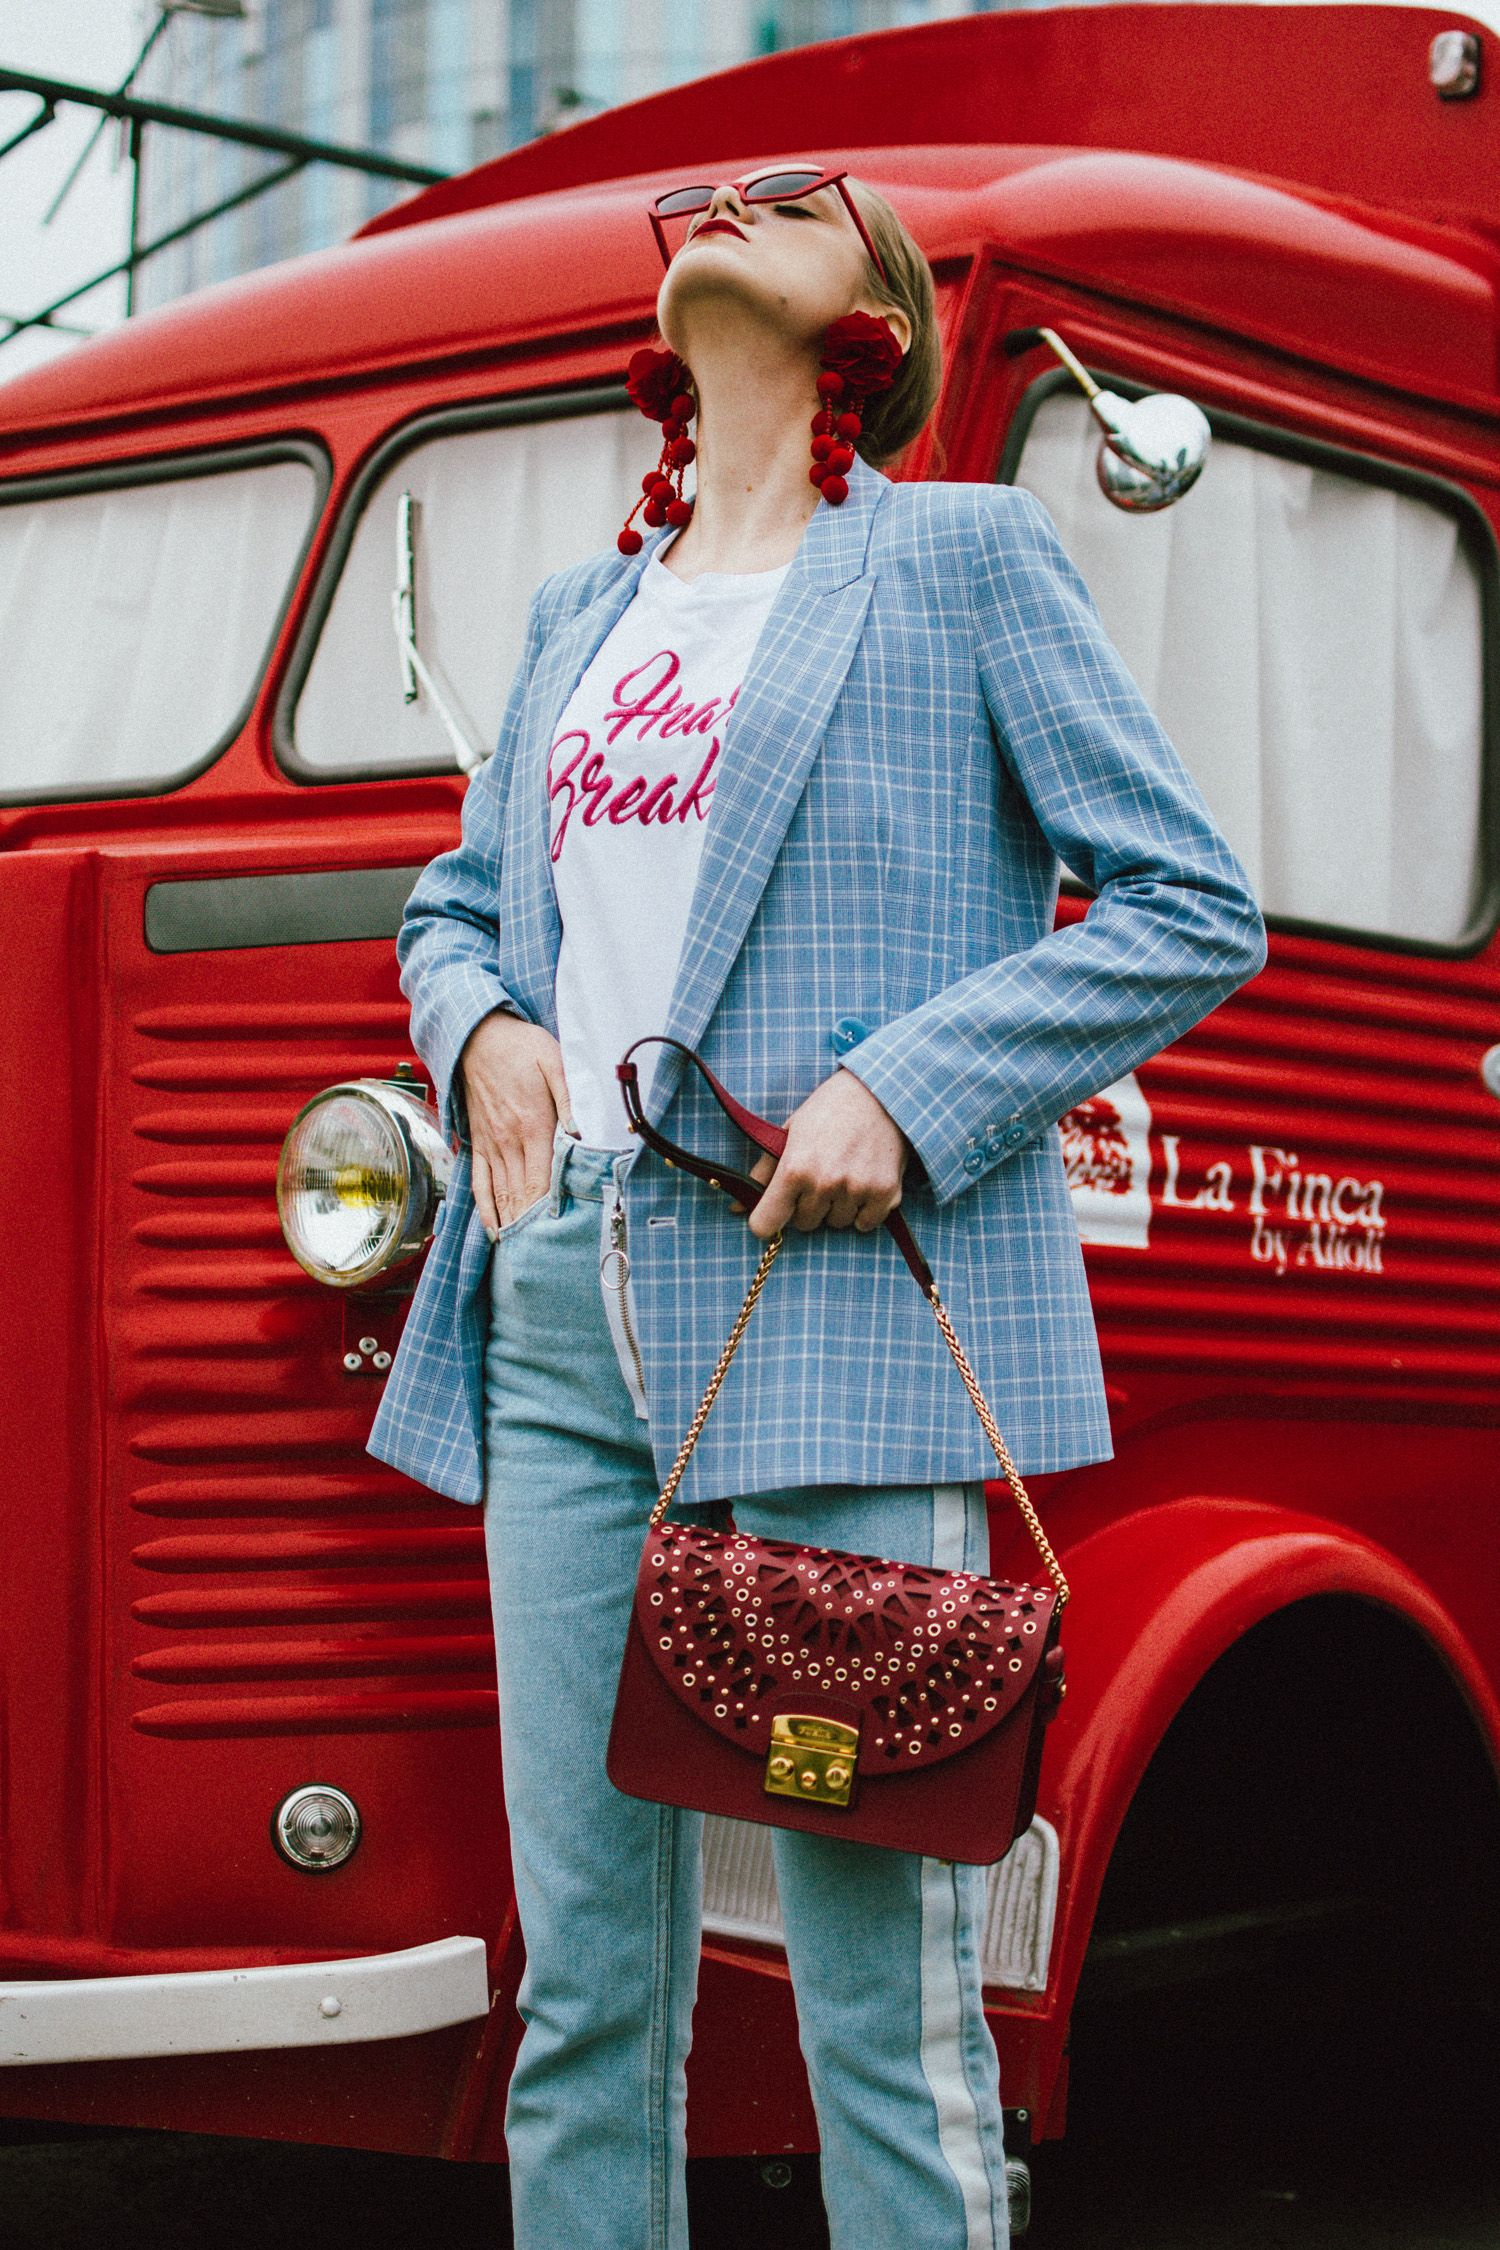 Baby blue checked blazer, statement jeans, furla metropolis red bag, small sunglasses, tee, andreea birsan, couturezilla, cute spring outfit ideas 2018, baby blue blazre, how to wear pastels this spring, jeans with constrastic side panel, redone jeans, reconstructed jeans trend, how to wear reconstructed jeans, red pom pom statement earrings, small cat eye sunglasses in red, retro small sunglasses, small sunnies, matrix sunglasses trend, micro sunglasses trend, red earrings, red and baby…